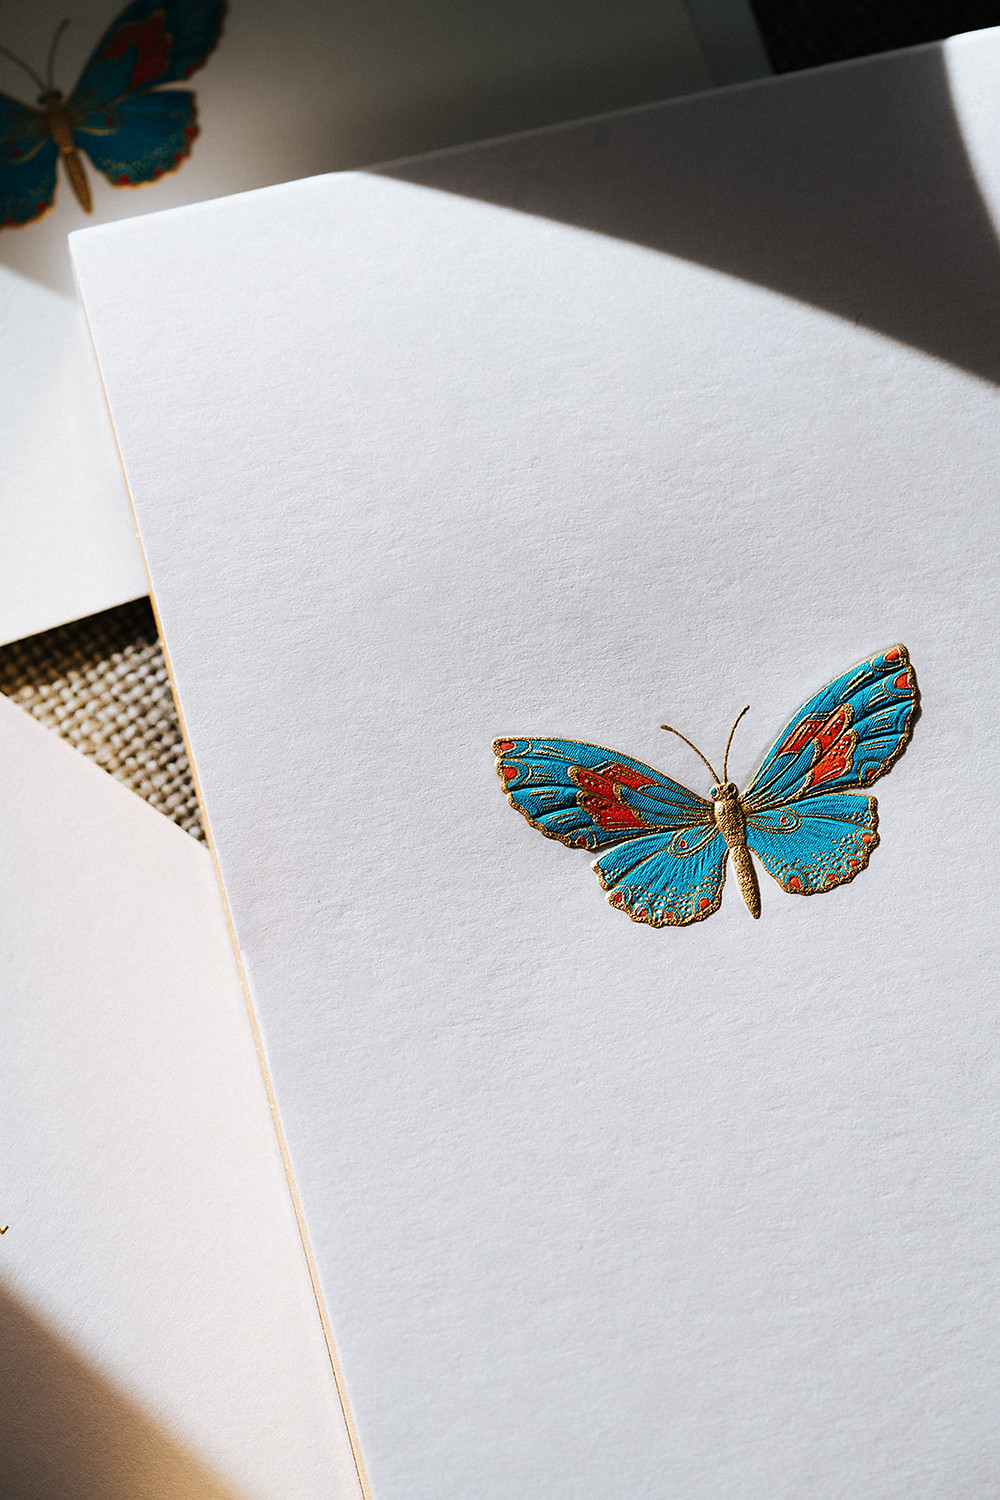 stationary for unique marketing strategies that has a blue and orange butterfly on it